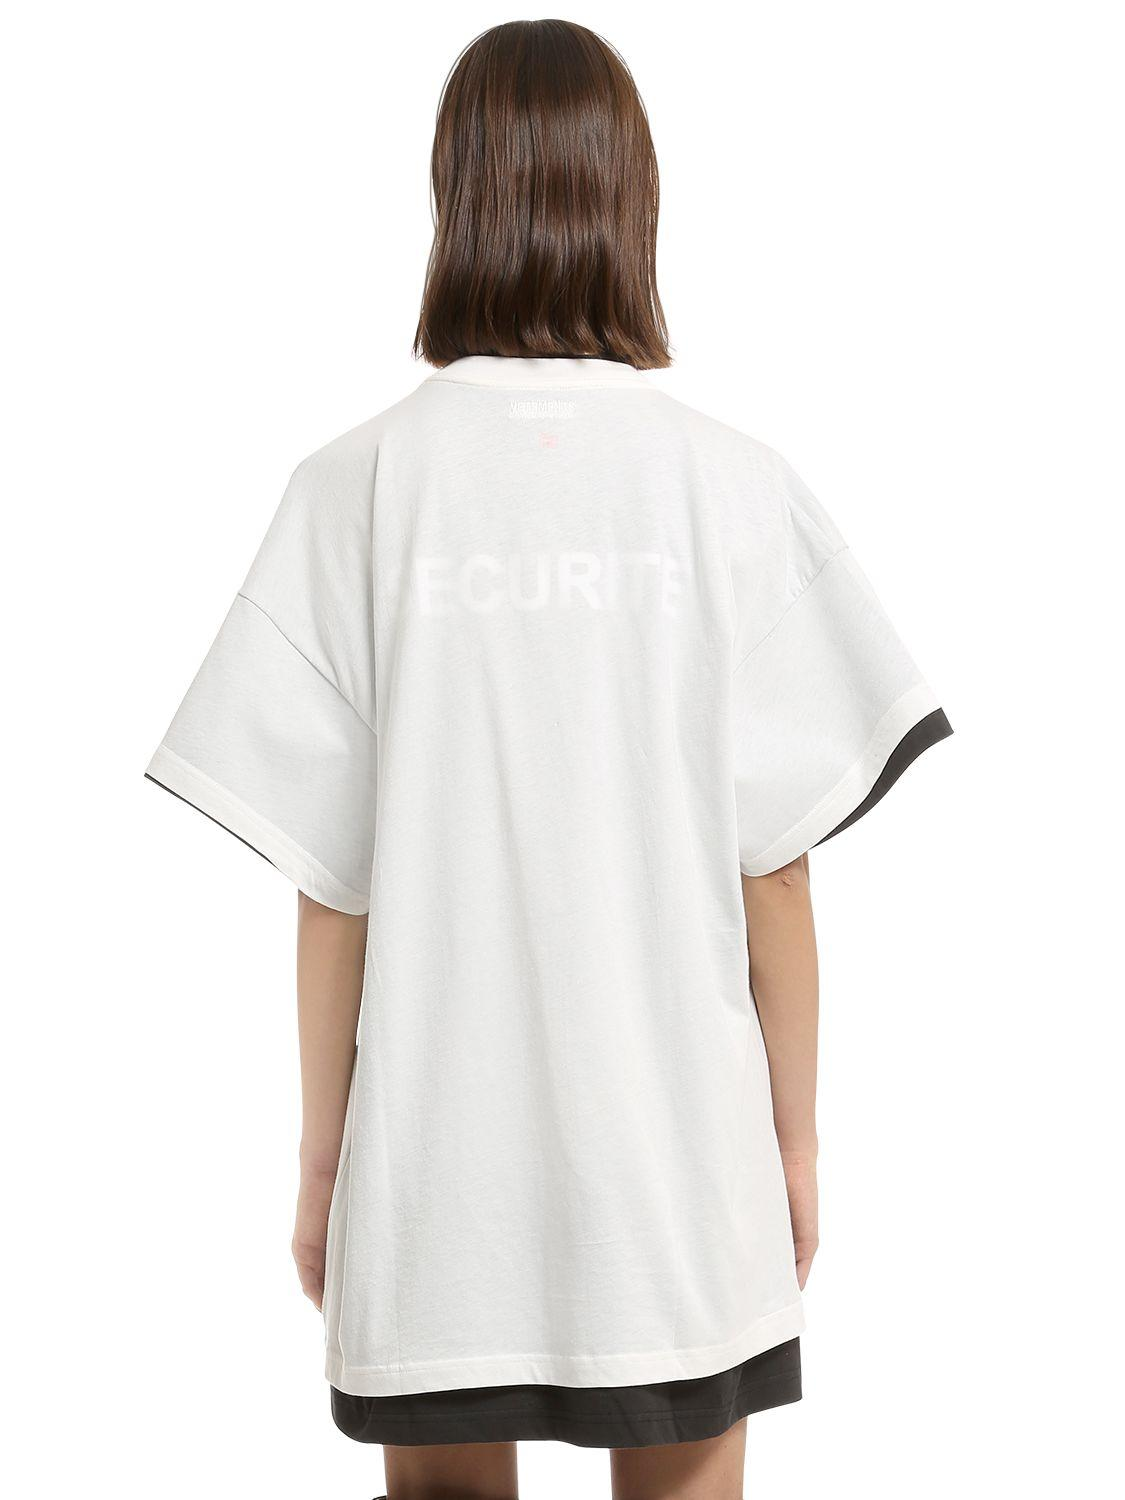 vetements hanes securite jersey doubled t shirt in white. Black Bedroom Furniture Sets. Home Design Ideas